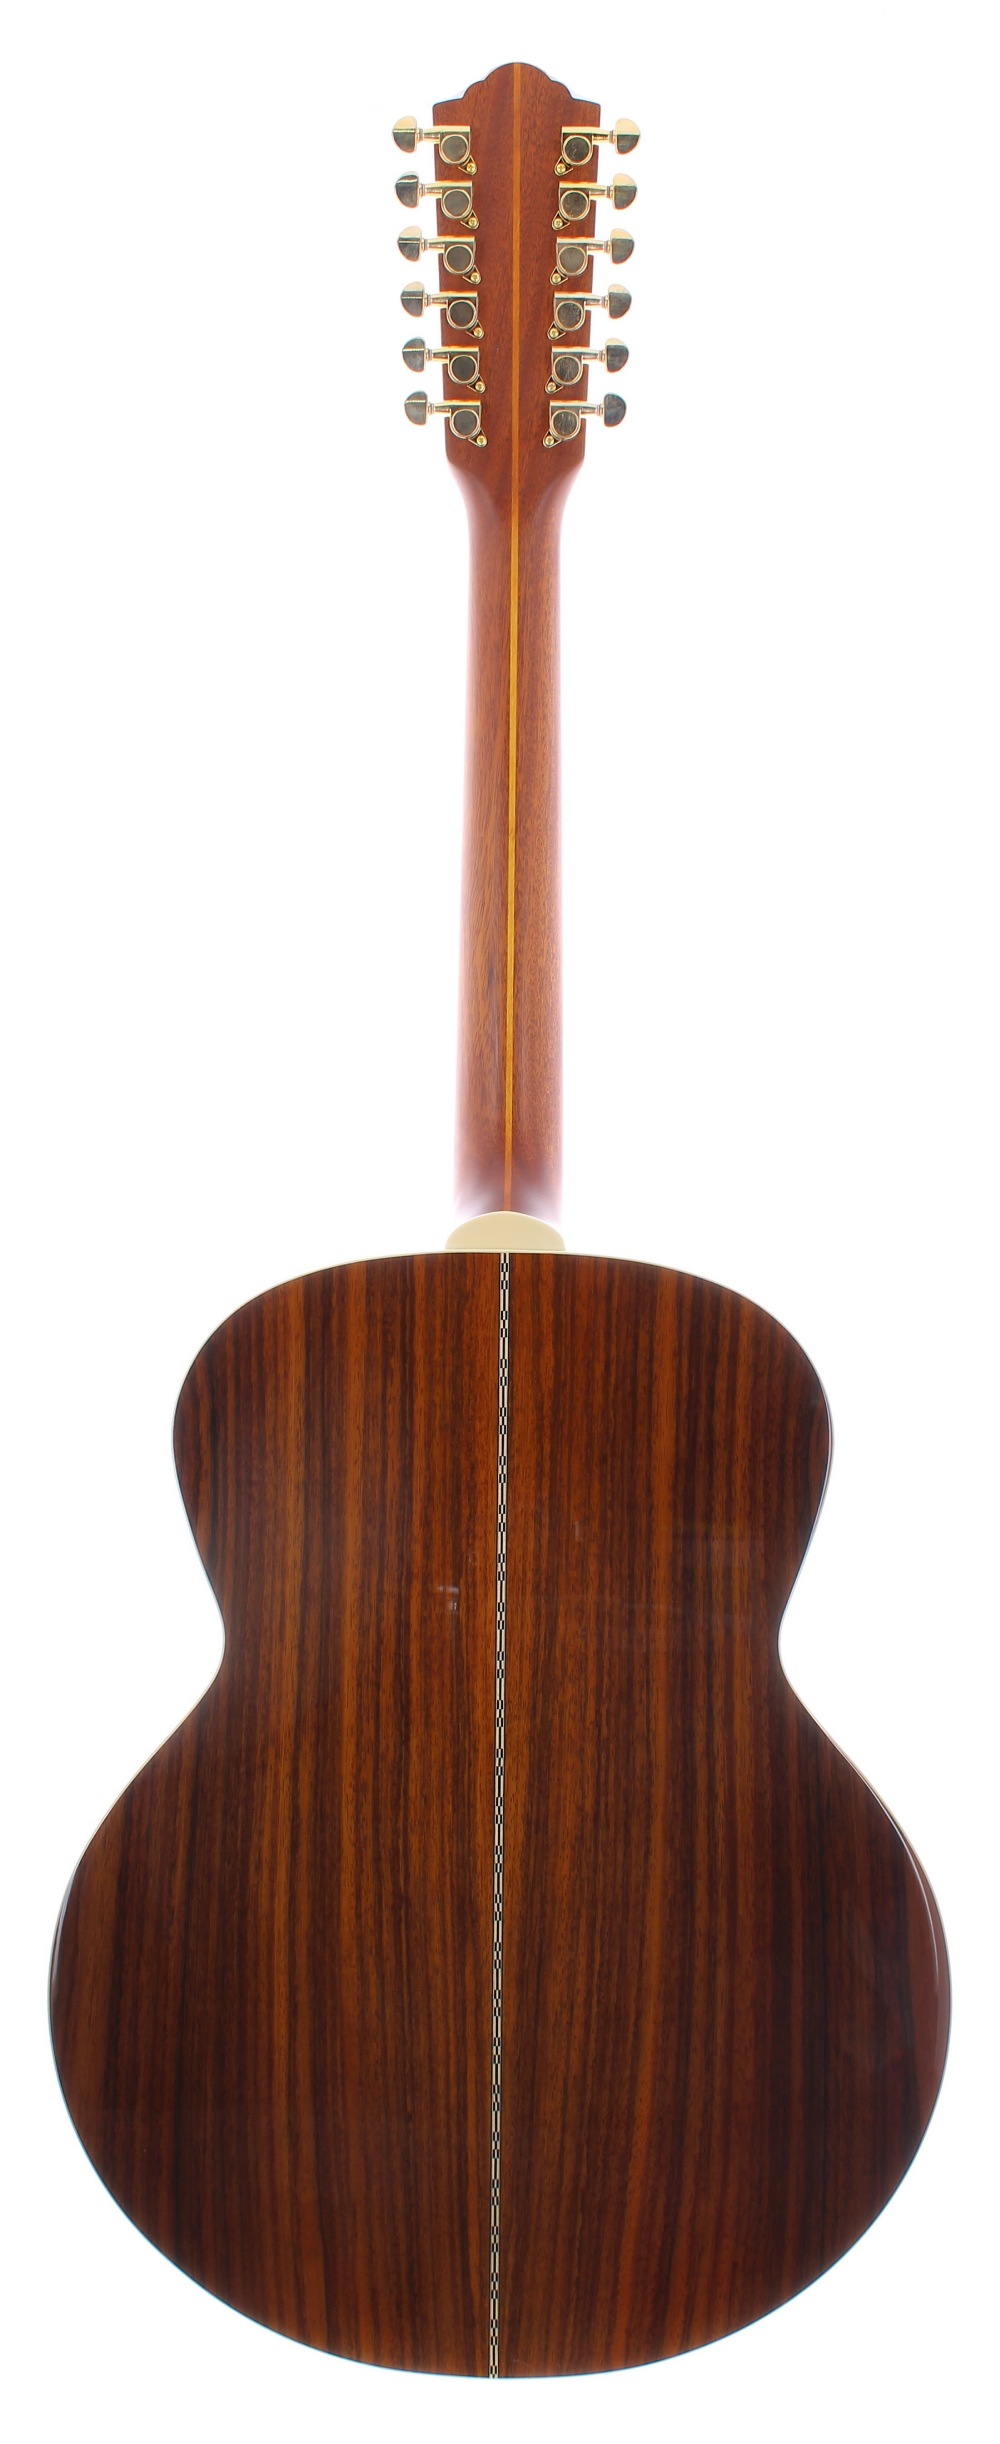 Guild F-1512 twelve string acoustic guitar, made in China, ser. no. GAD-xxxx2; Back and sides: - Image 2 of 3